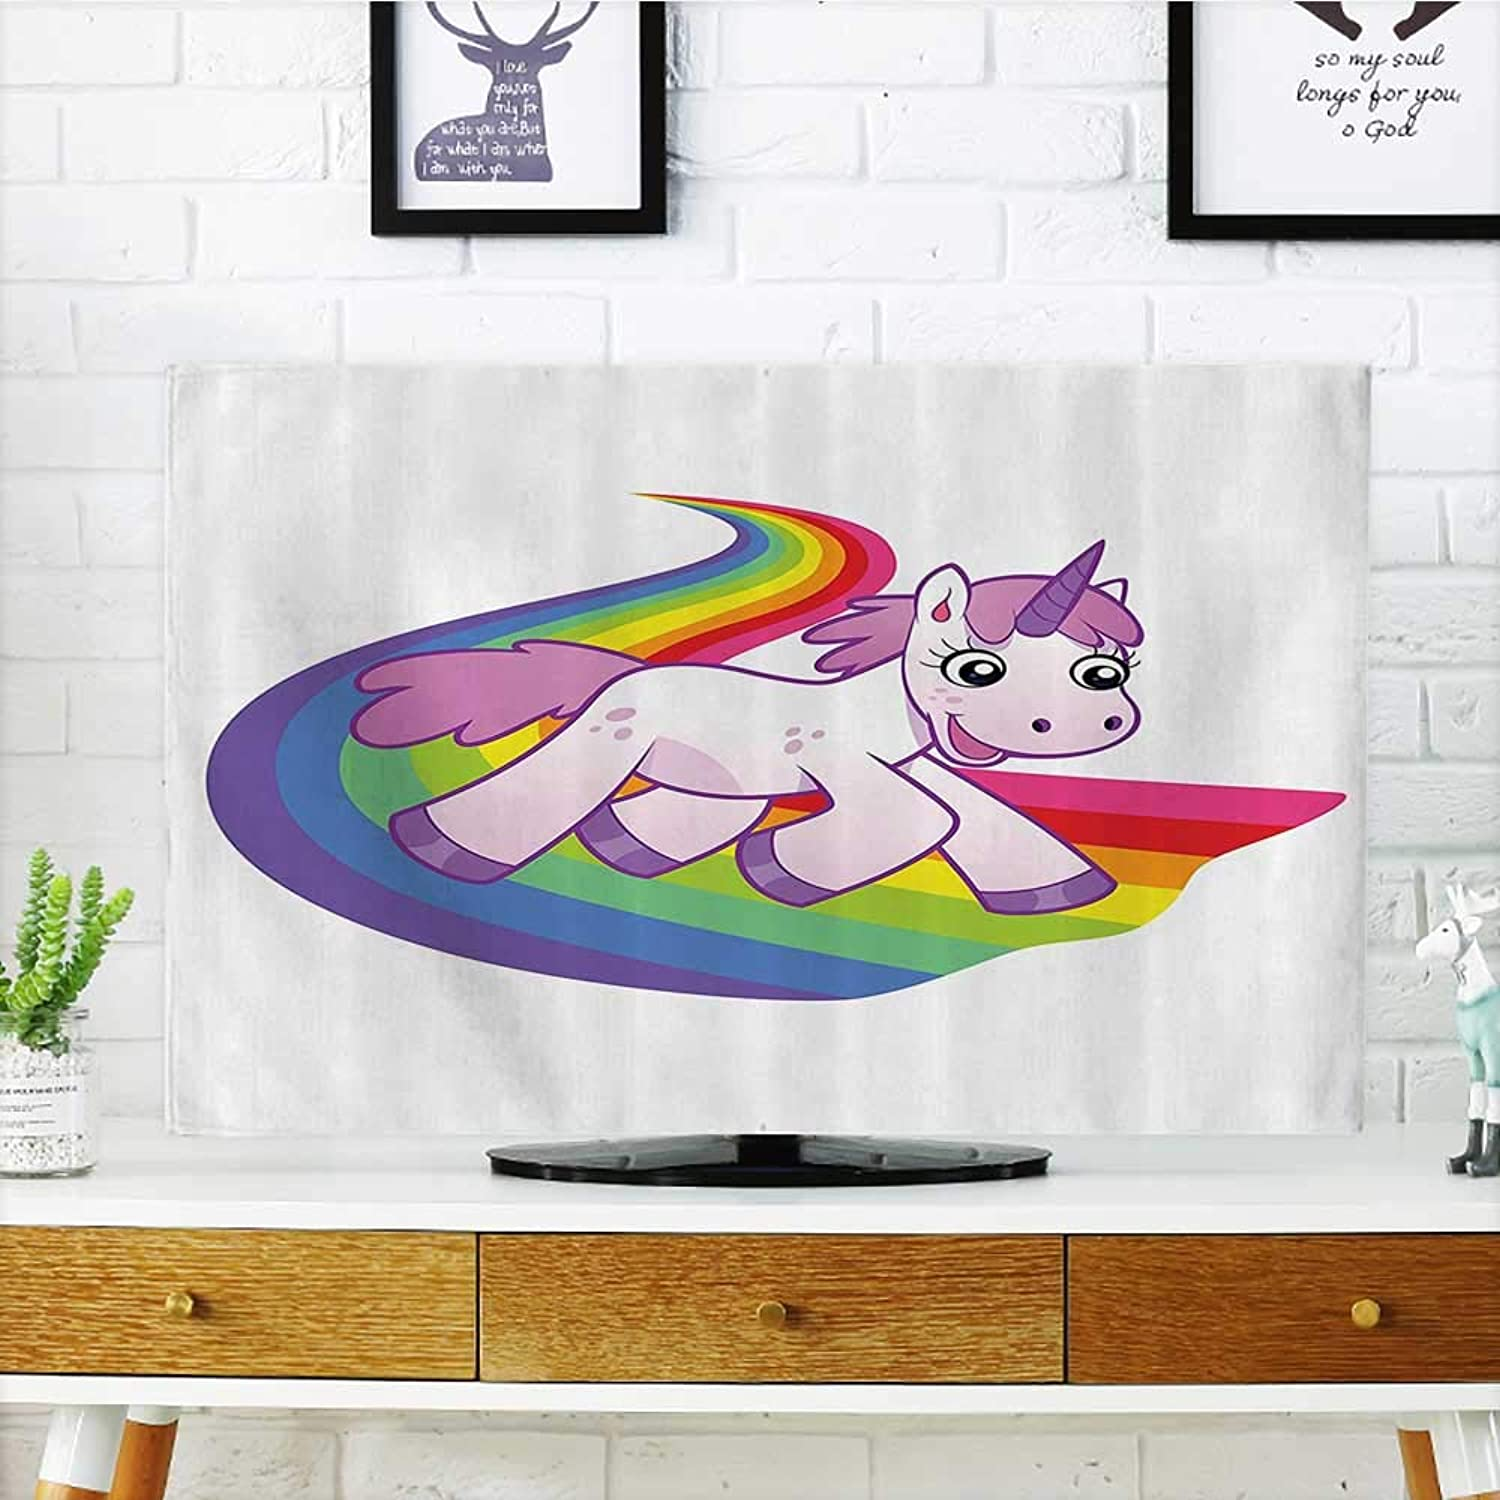 L-QN Cover for Wall Mount tv Baby Unicorn Runs The Rainbow Mythological ntasy Legendary Creature Cover Mount tv W32 x H51 INCH TV 55